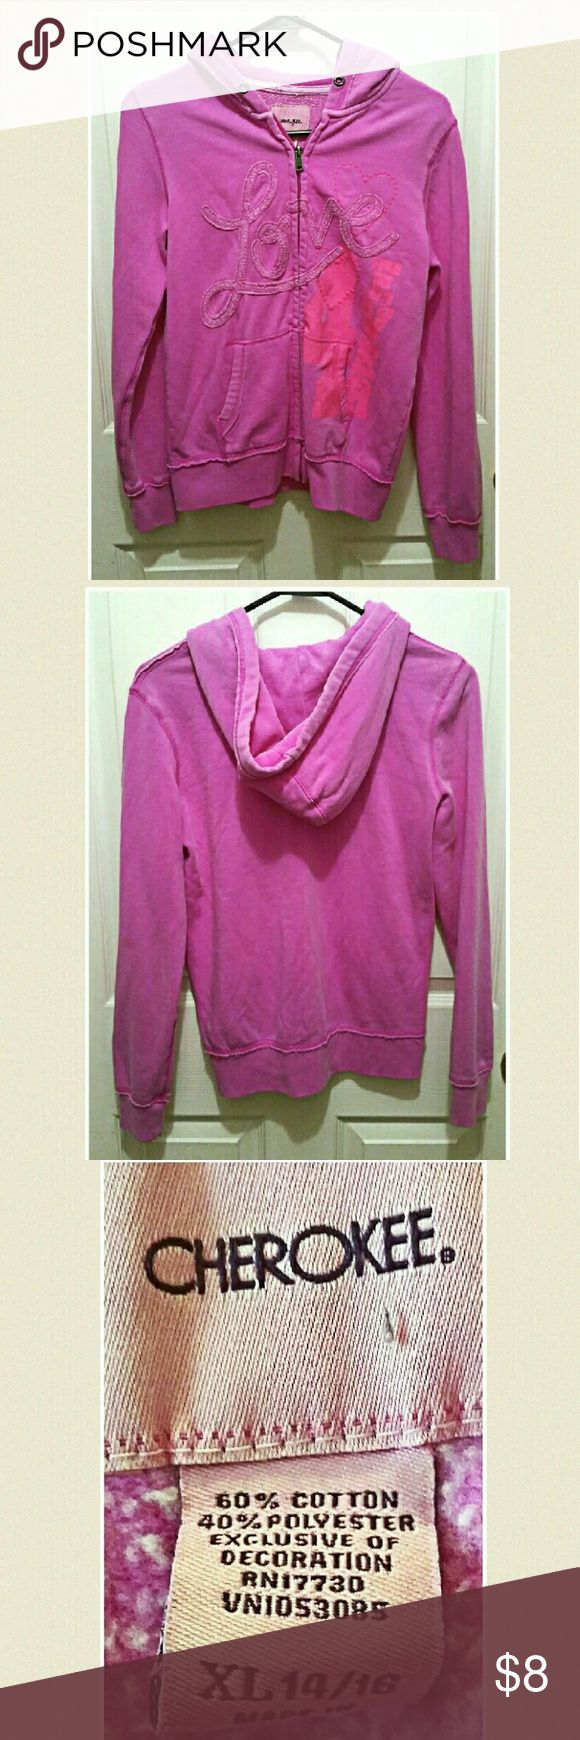 Girls Pink sweatshirt By Cherokee 60%cotton, 40%polyester. Size xl girls. No holes or stains noted. Cherokee Shirts & Tops Sweatshirts & Hoodies